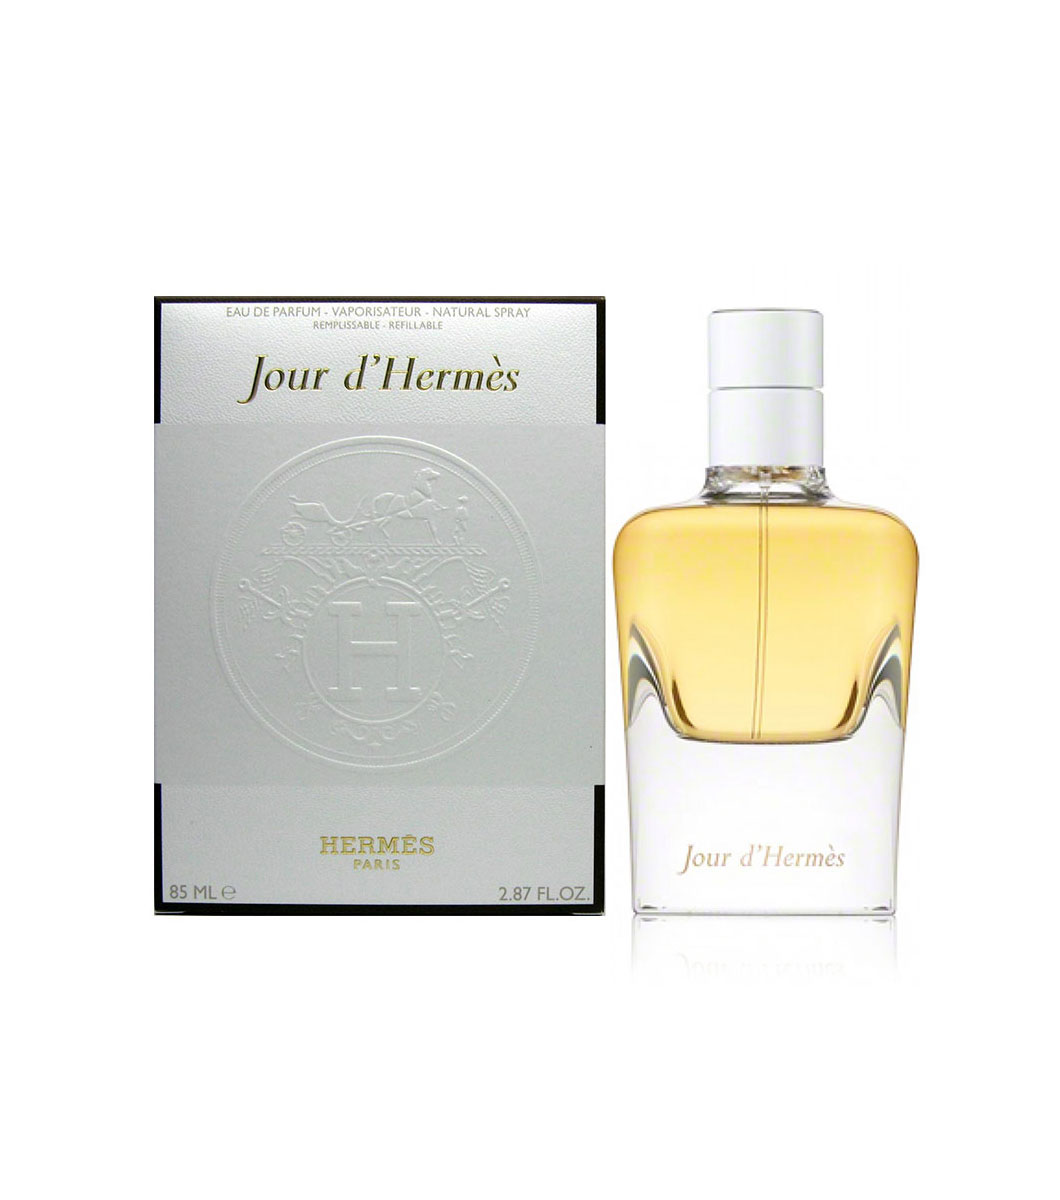 Hermes Jour Dhermes Edp 85ml Plush Fragrances Terre D Man Eau De Parfum 75 Ml Click To Enlarge Homewomen